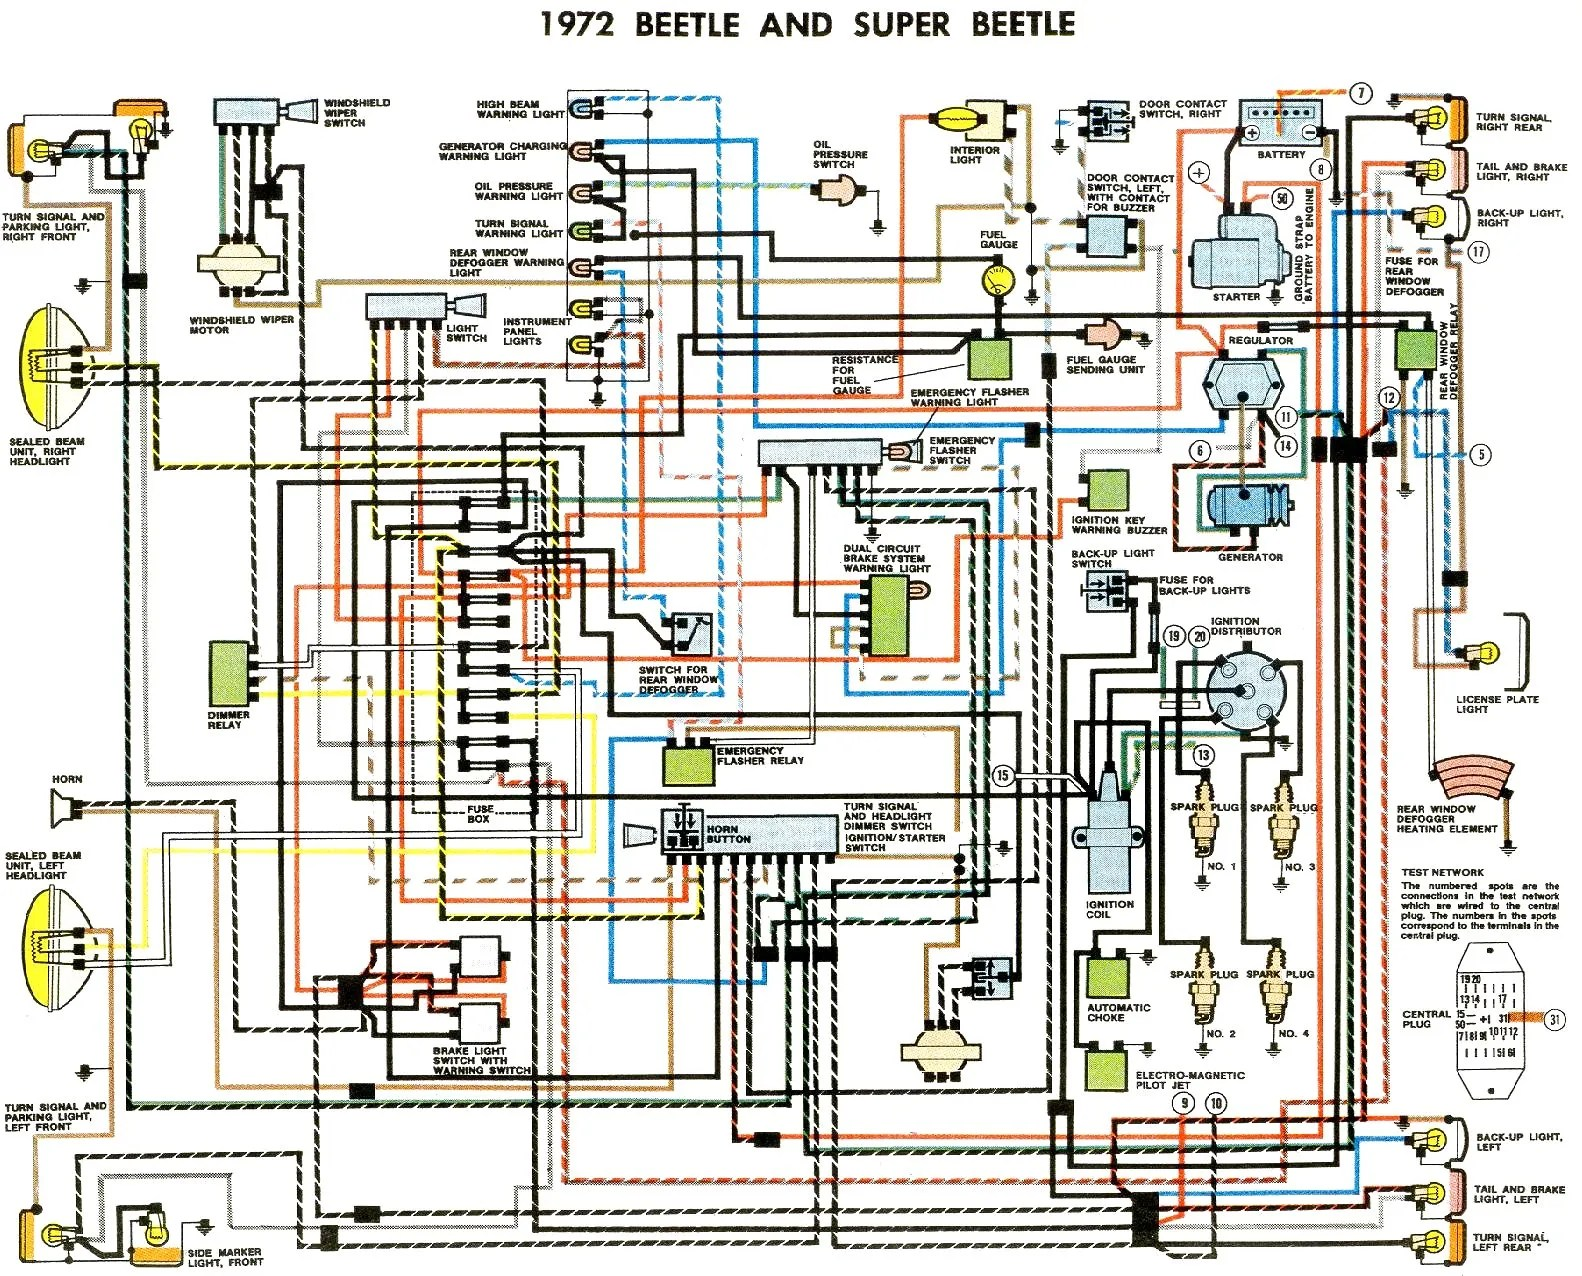 hight resolution of 1972 beetle wiring diagram thegoldenbug com vw t2 1972 wiring diagram 1972 vw squareback wiring diagram